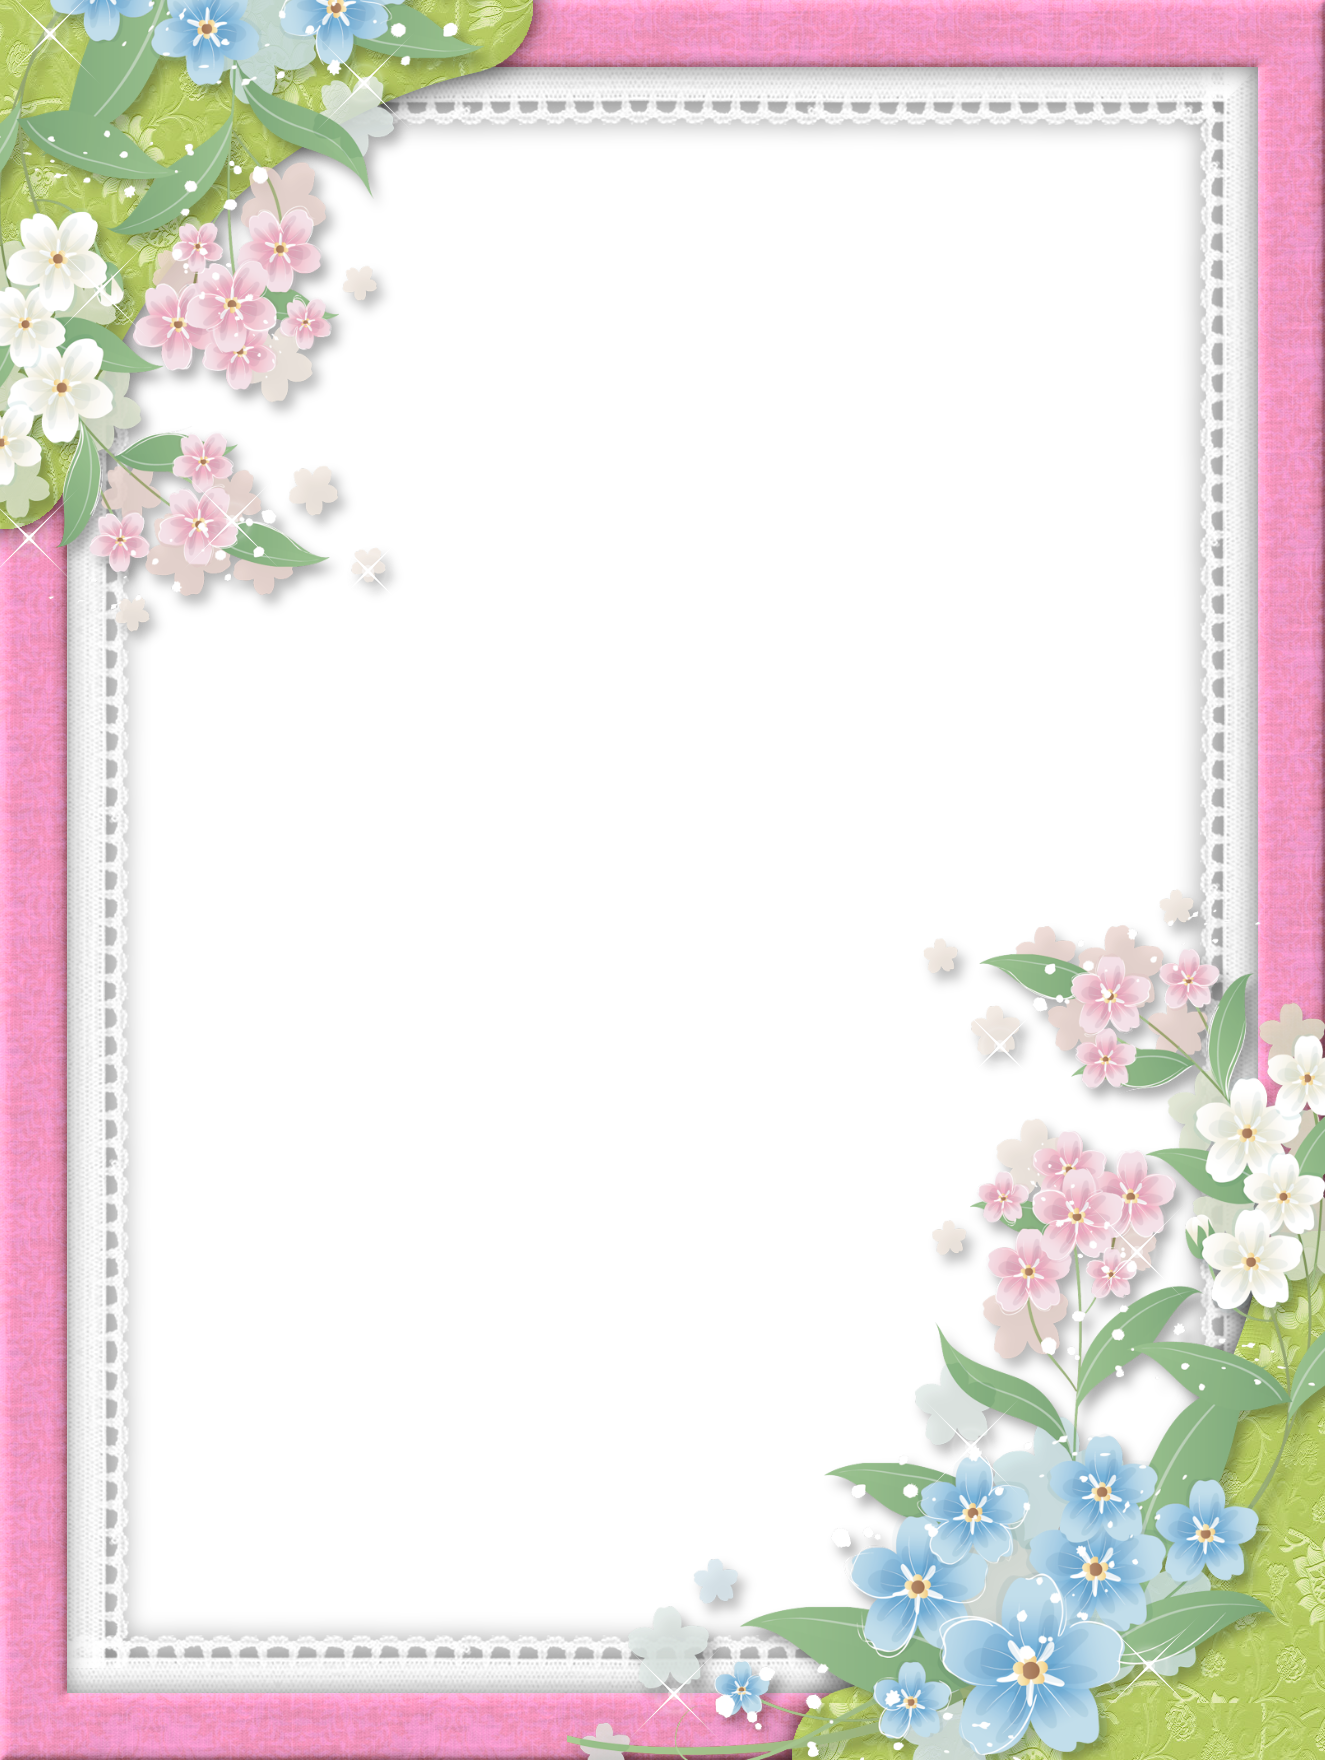 Pink Transparent Frame with Flowers | floral frames ...